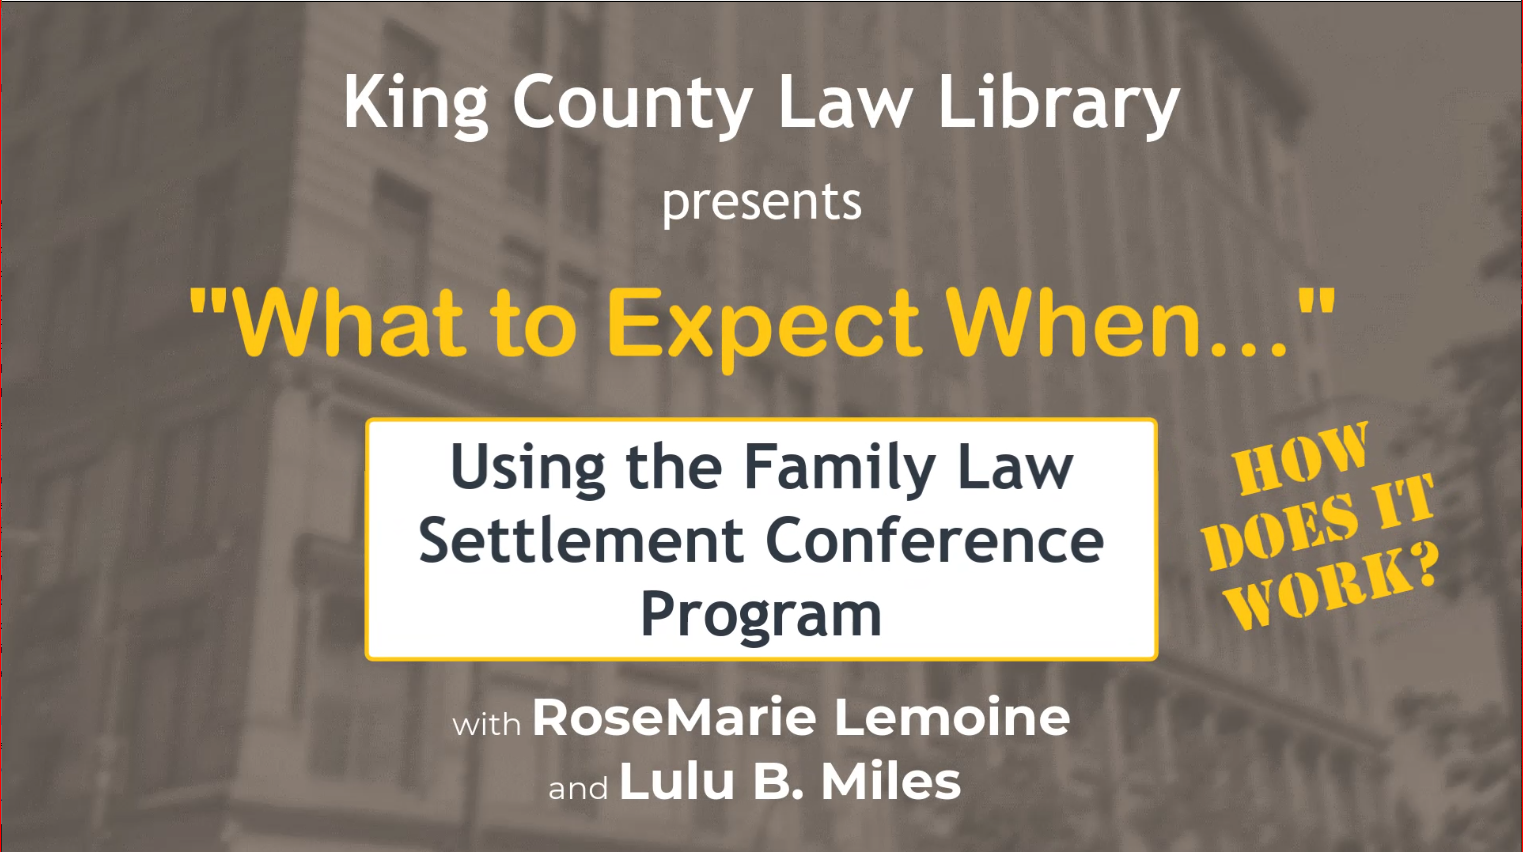 WTEW… Using the Family Law Settlement Conference Program – HOW DOES IT WORK?